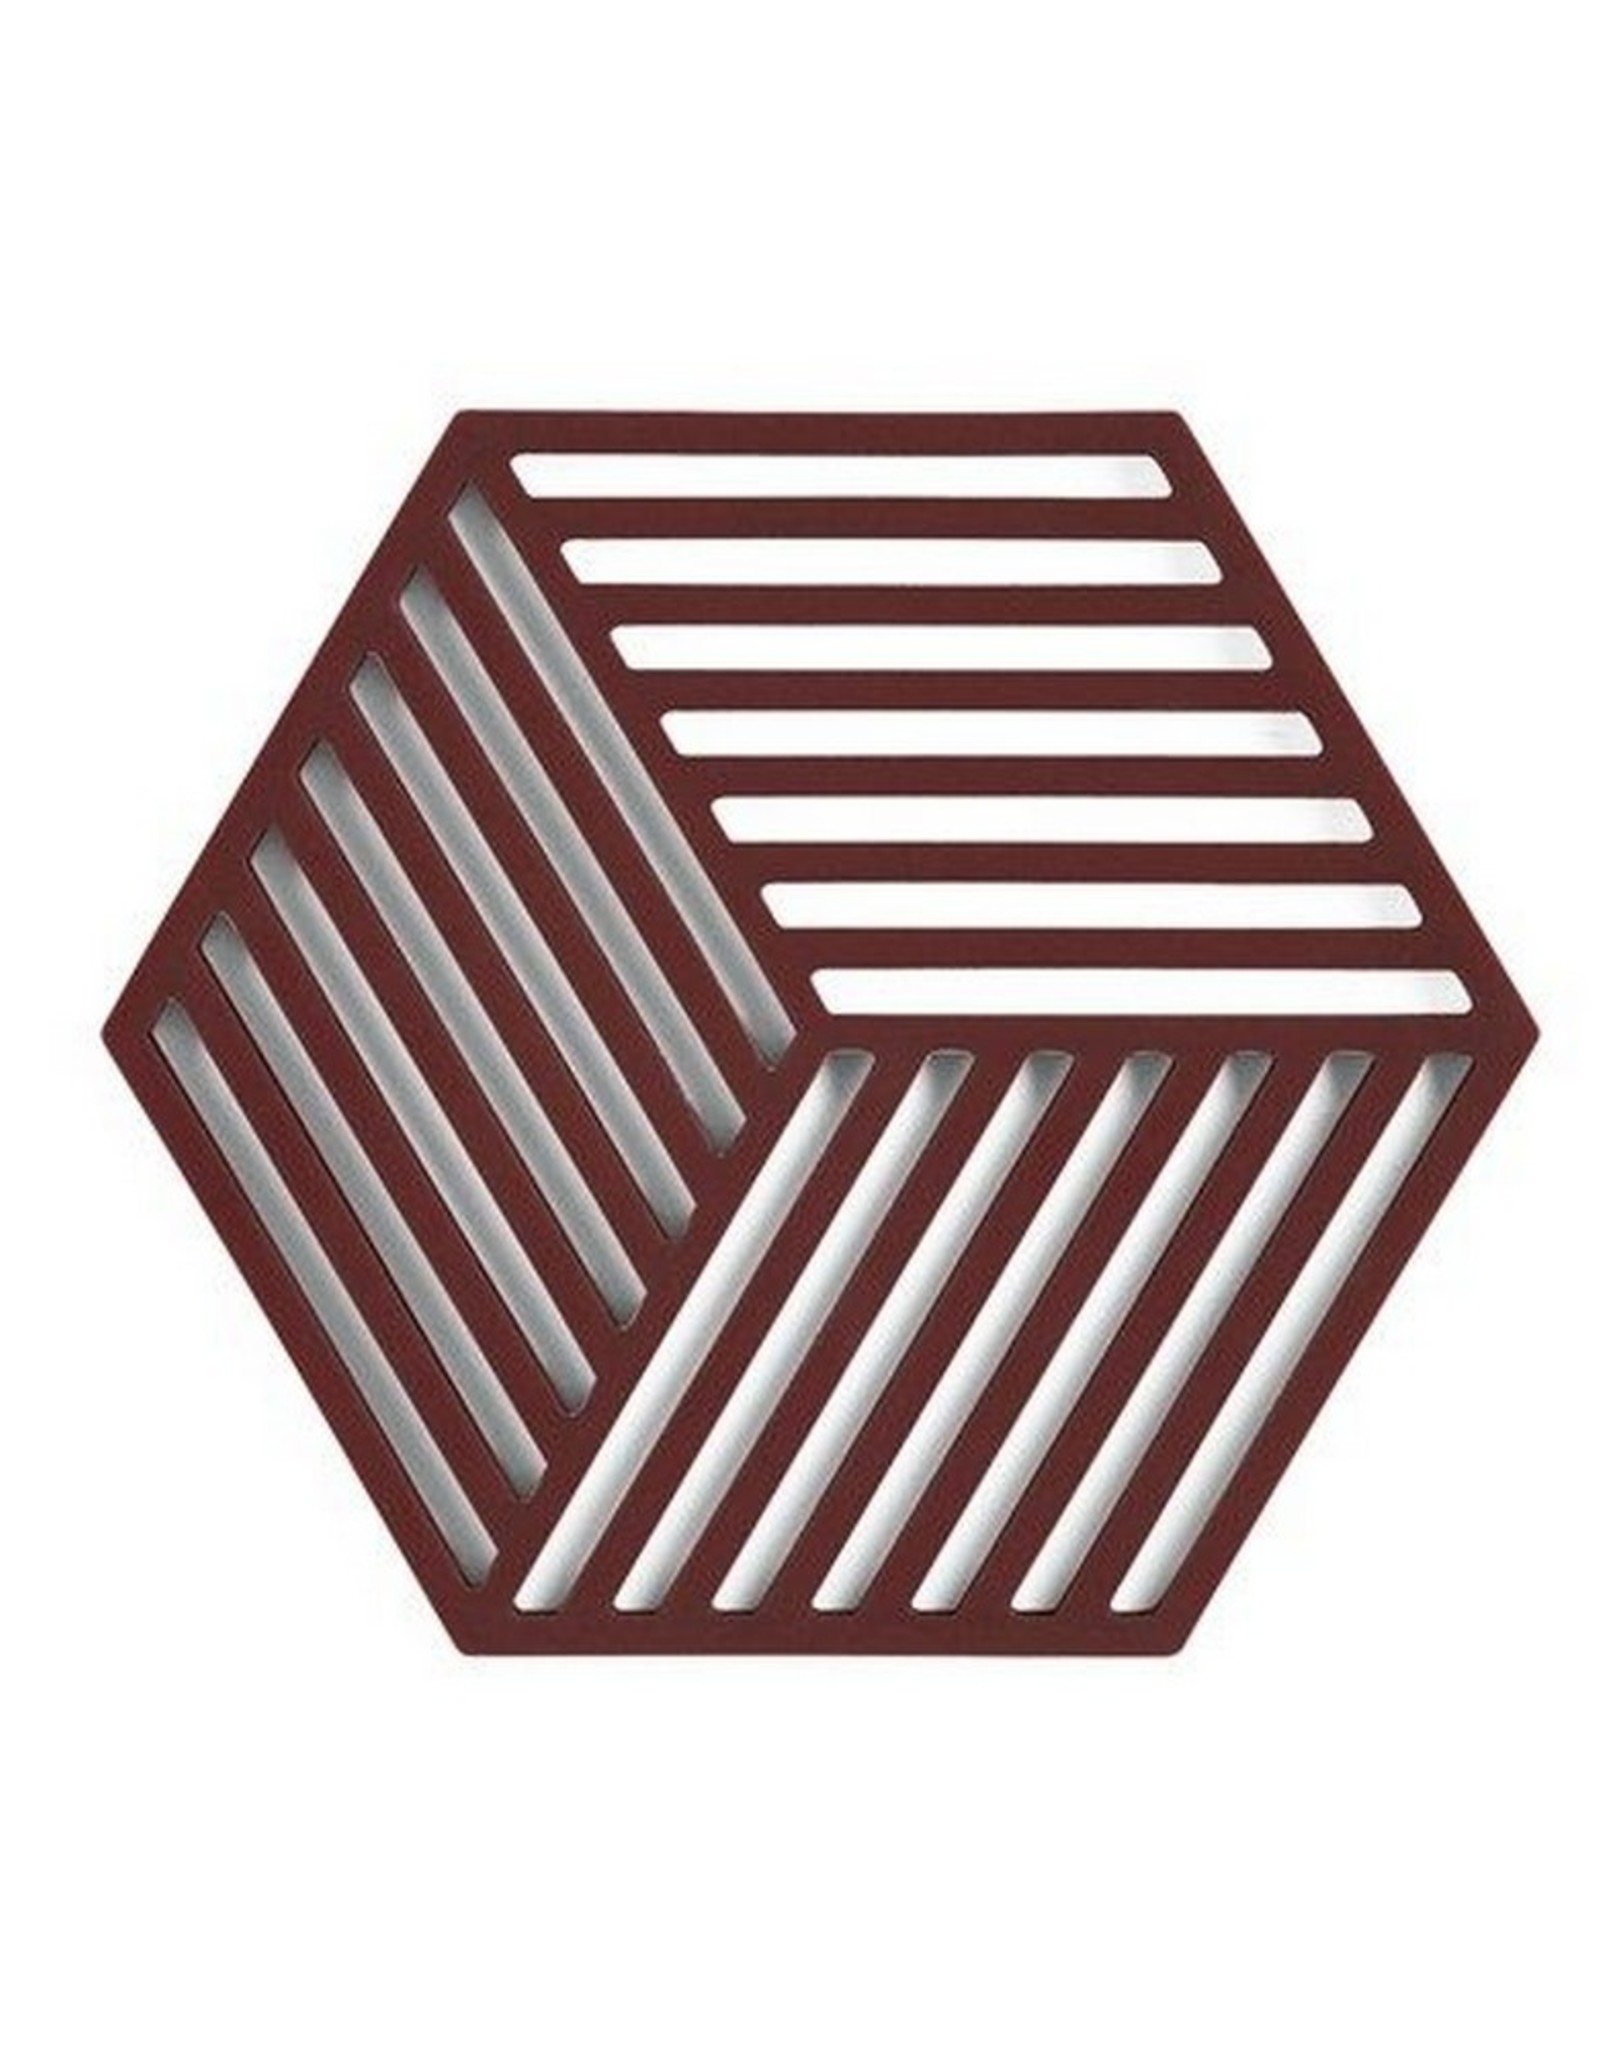 ZONE Denmark Pannenonderzetter Hexagon Raisin